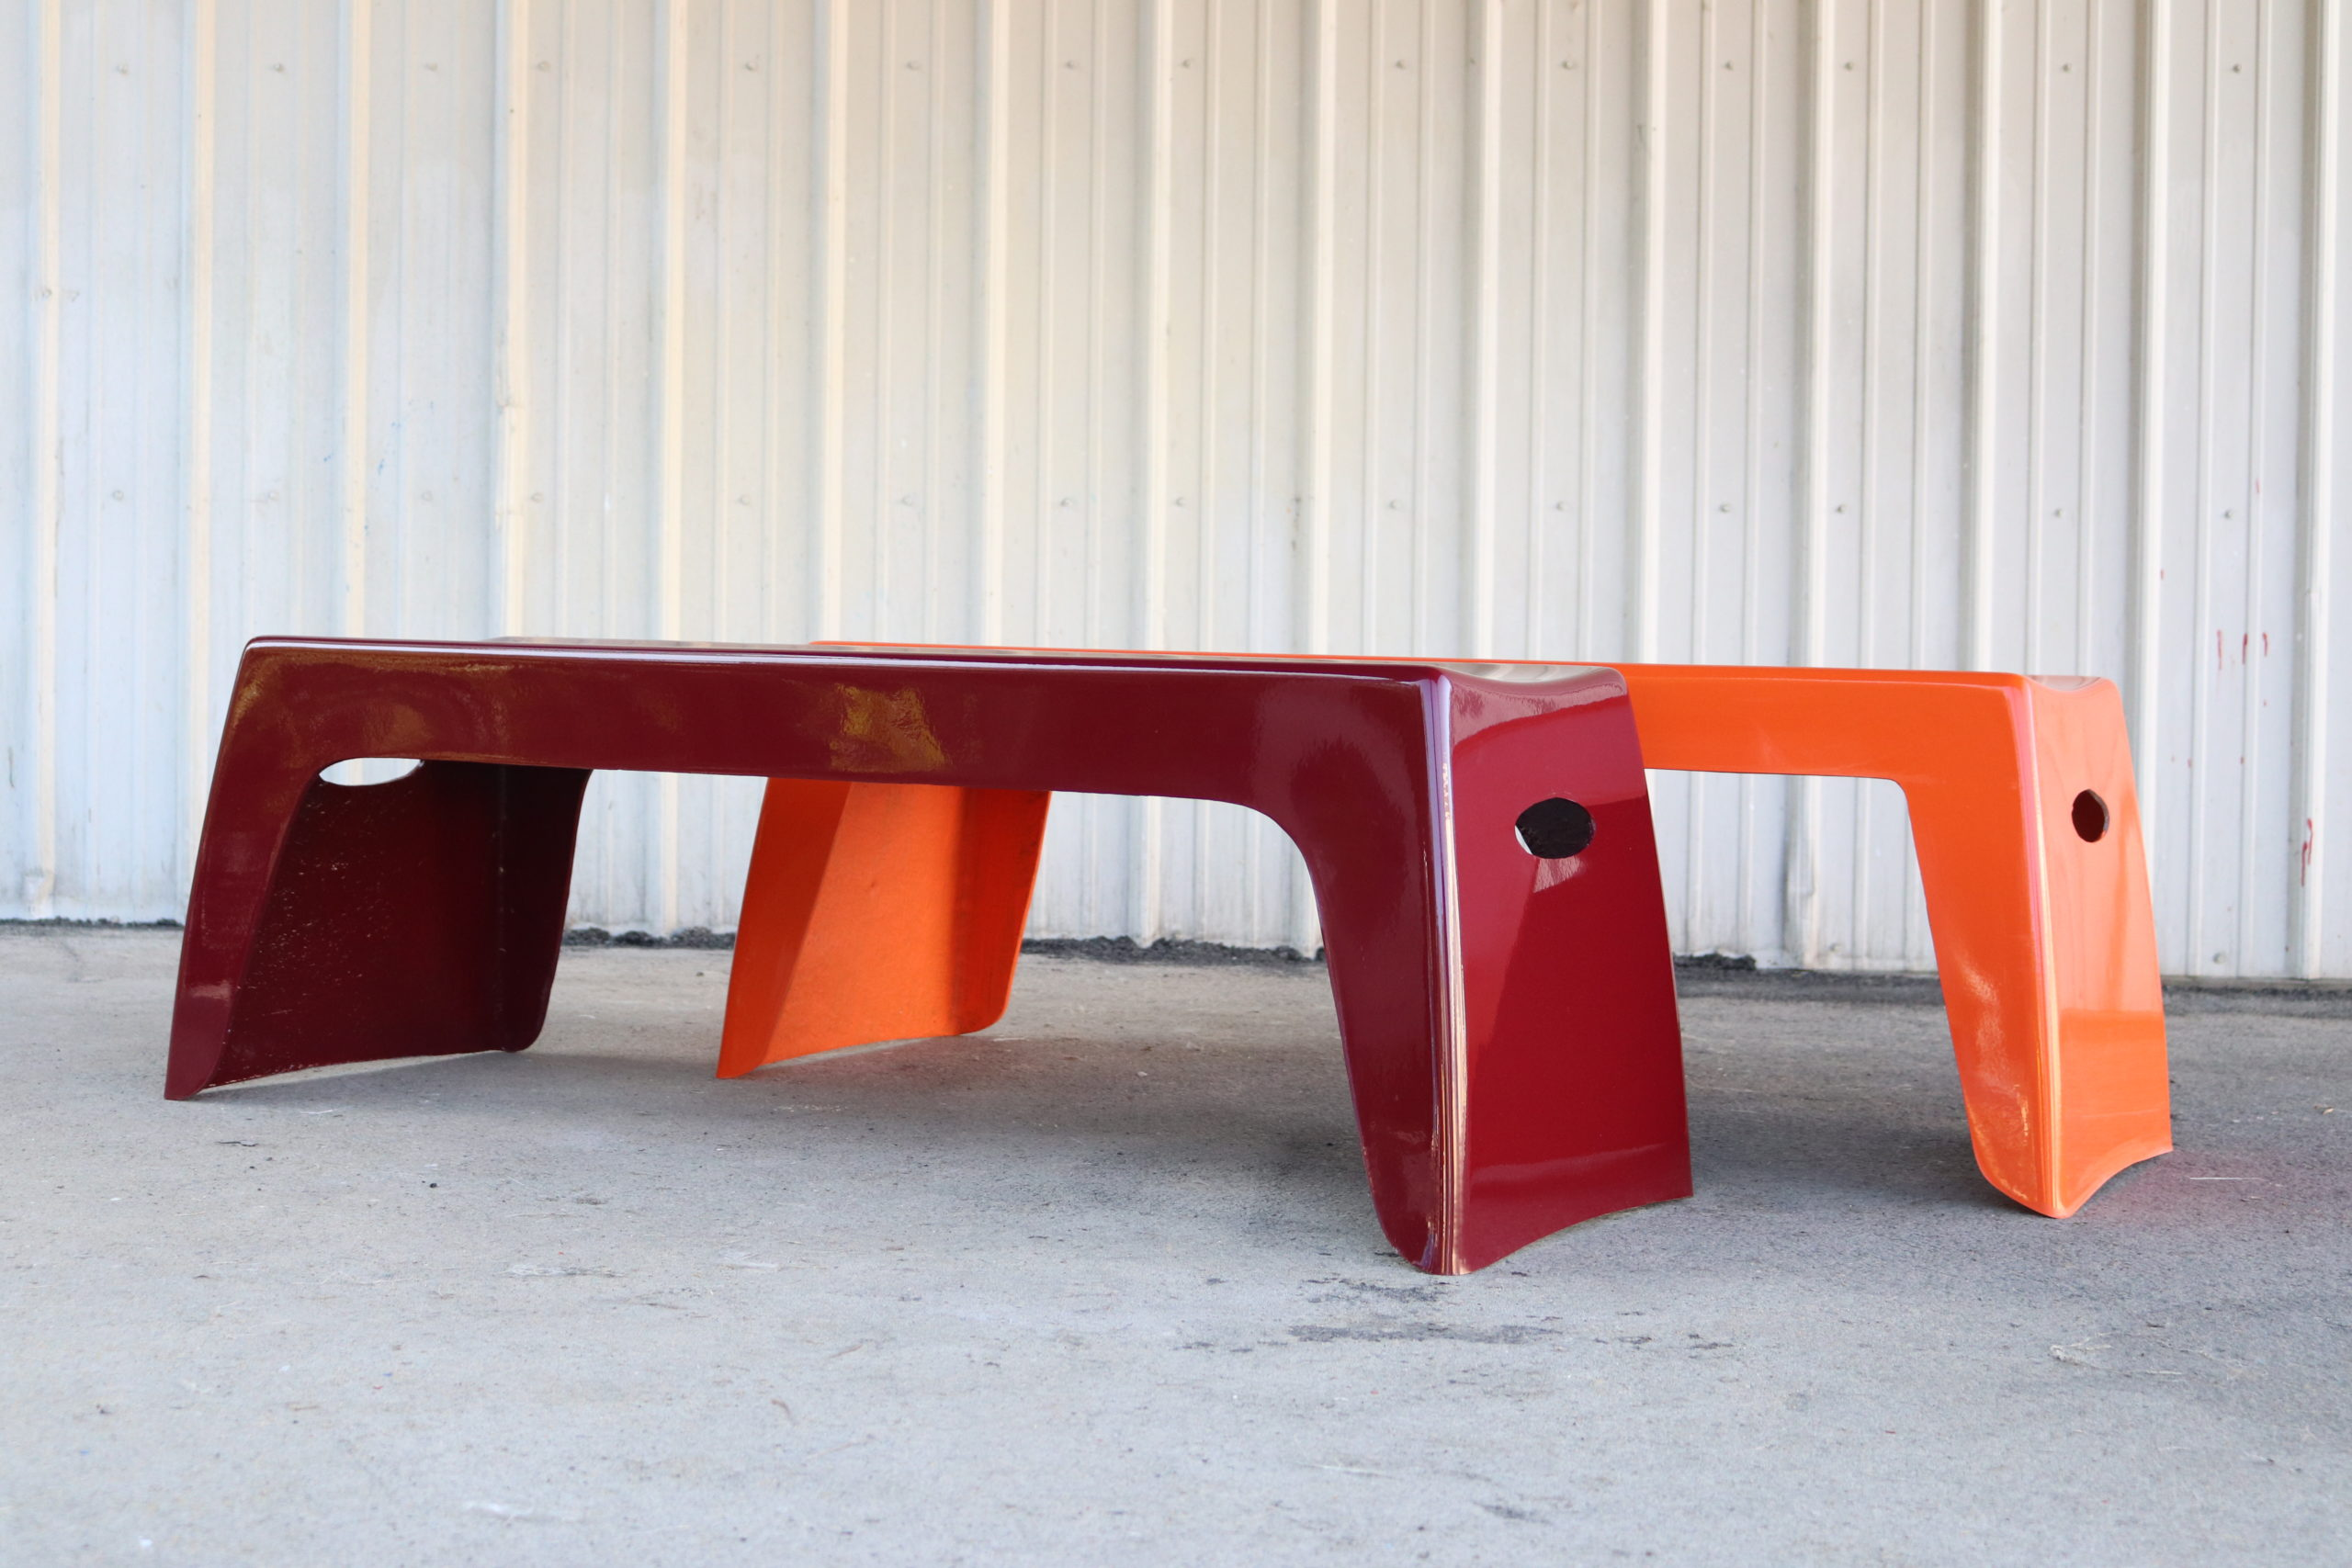 Two 4' benches sit side-by-side